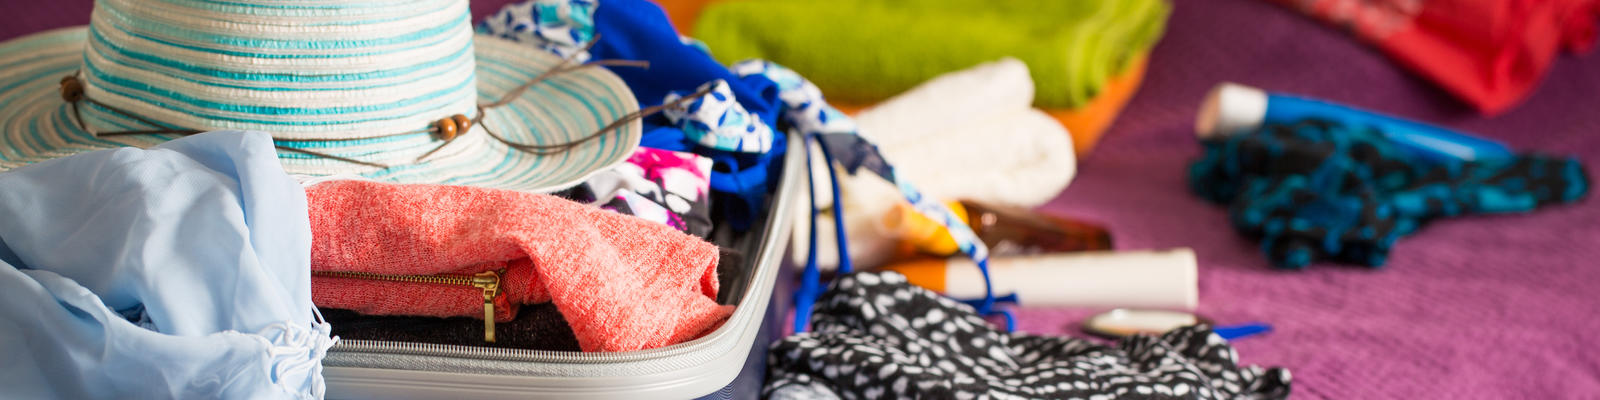 Anatomy of a Cruise Carryon (Photo: REDPIXEL.PL/Shutterstock)